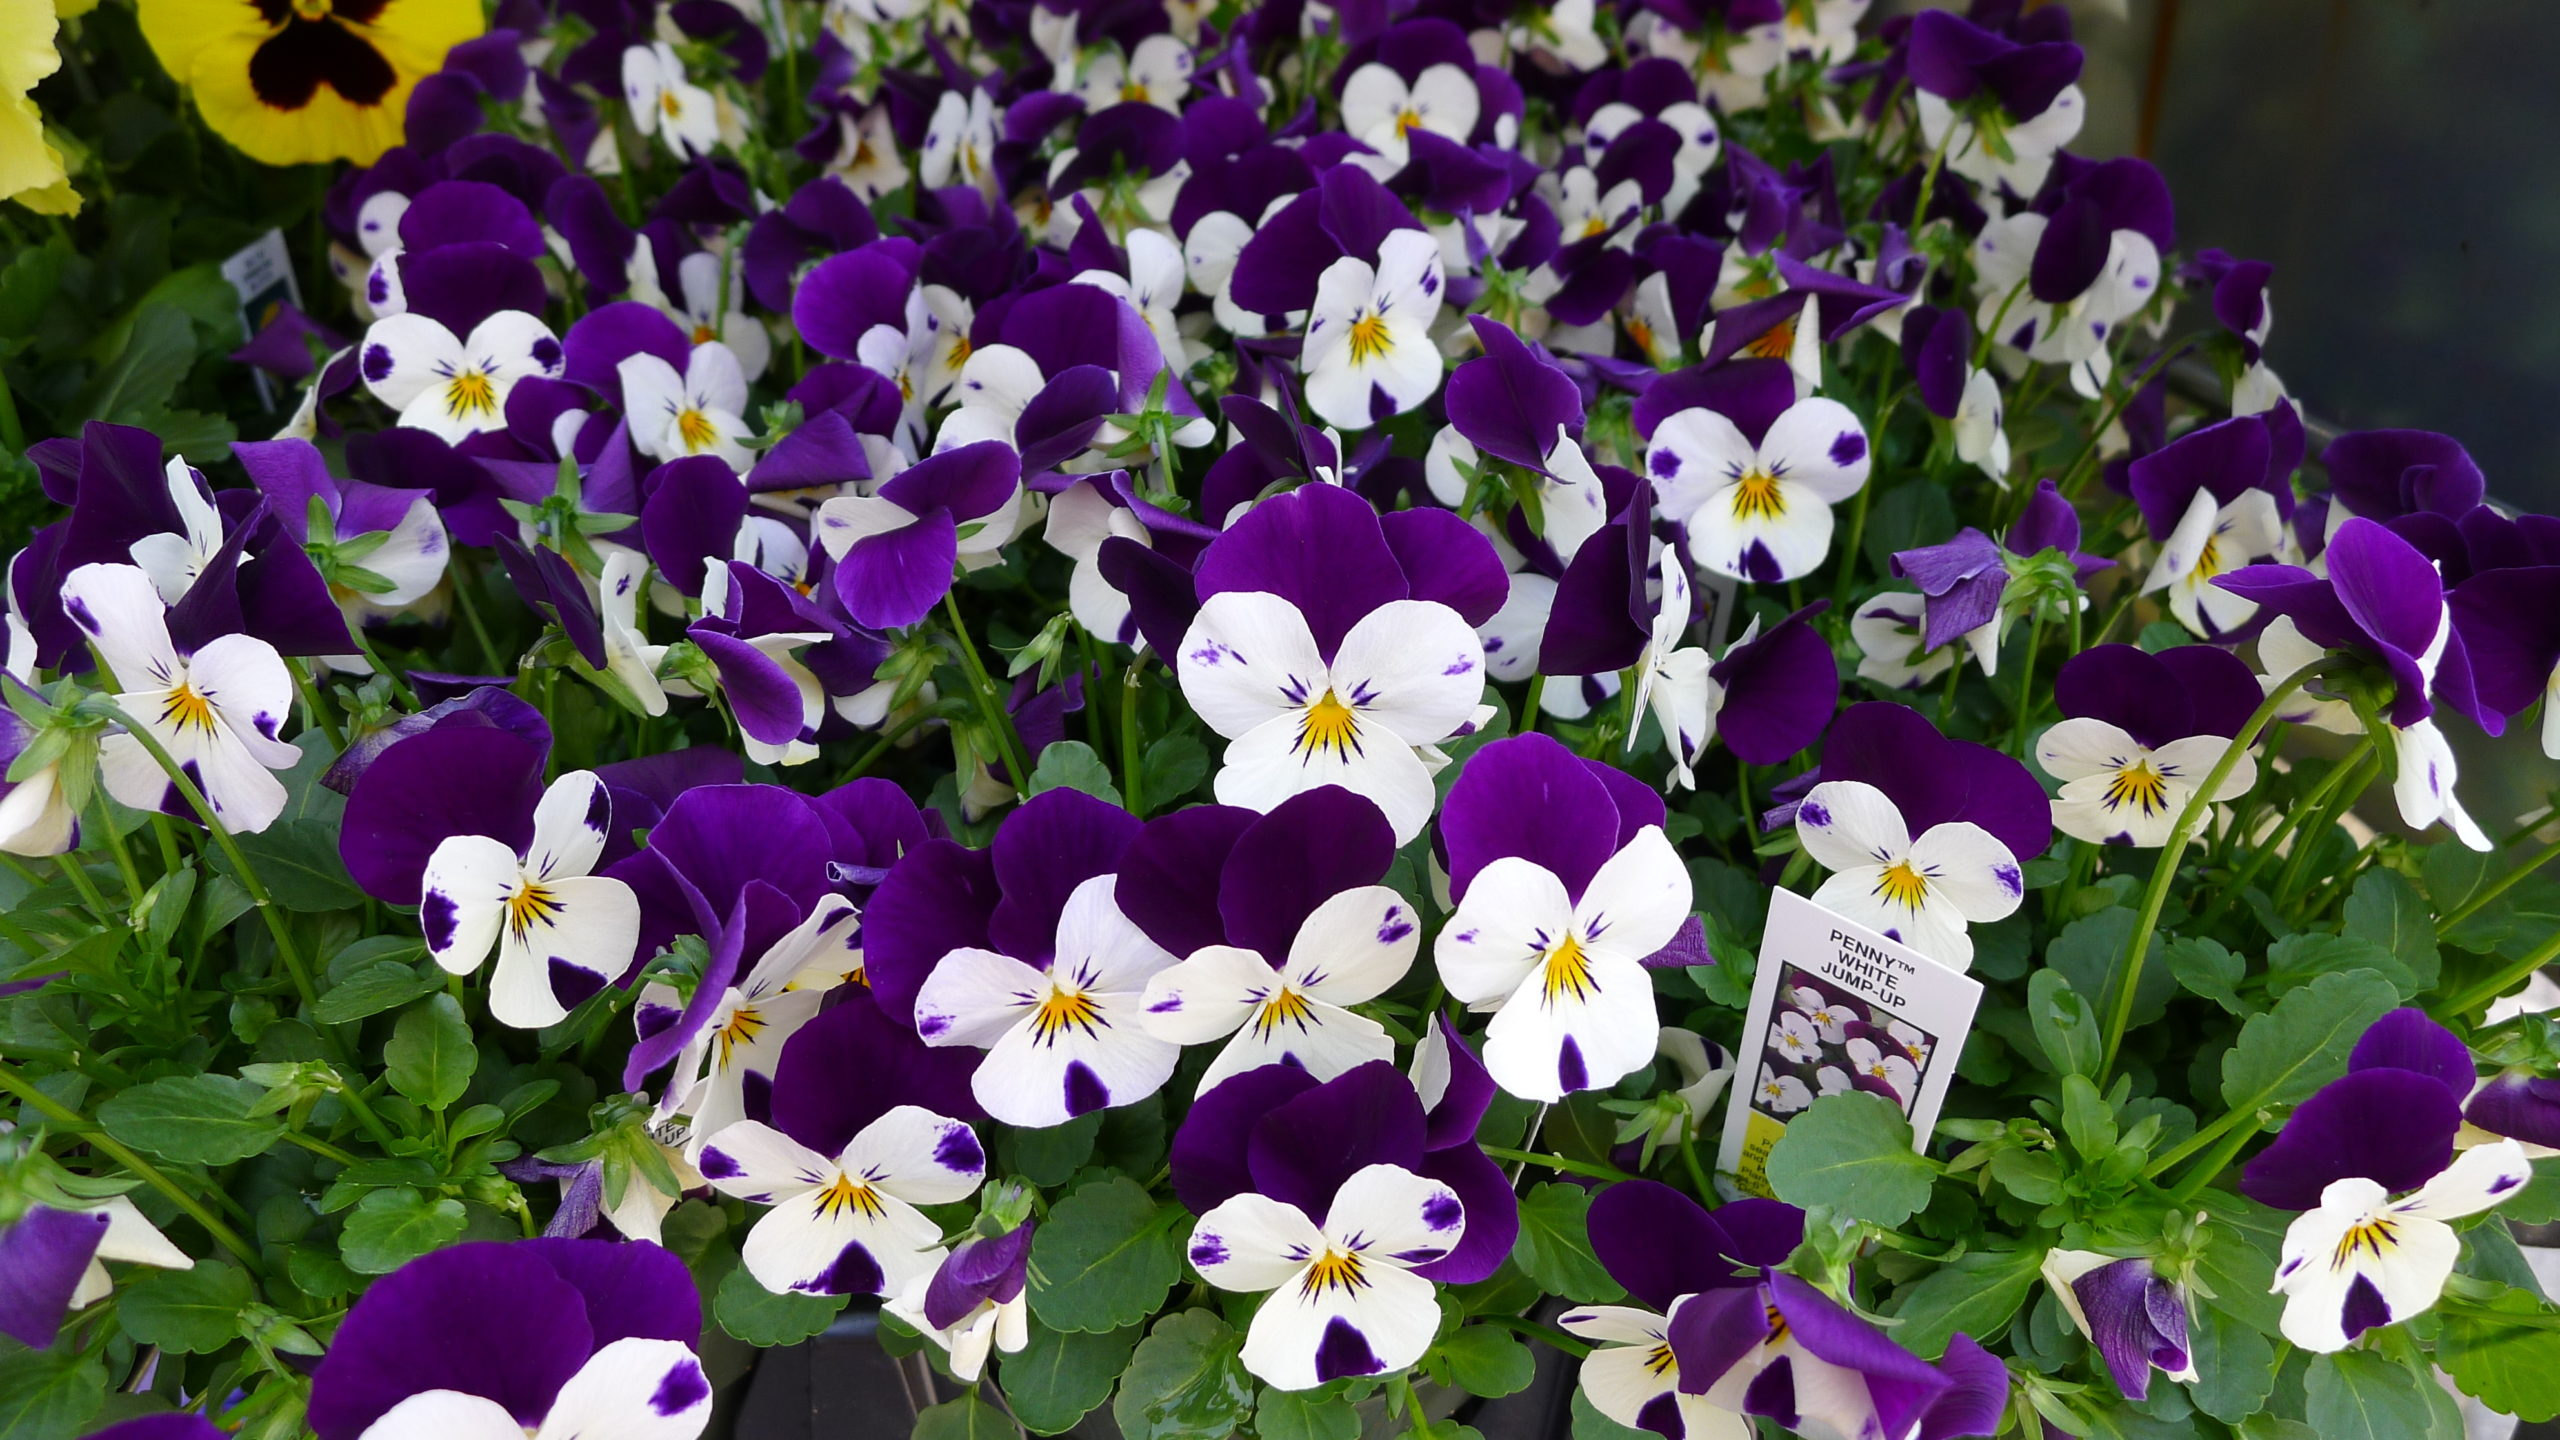 This is the Penny White series of hybrid viola Johnny-Jump-Up. Note the two upper petals and three lower petals confirming its viola lineage.